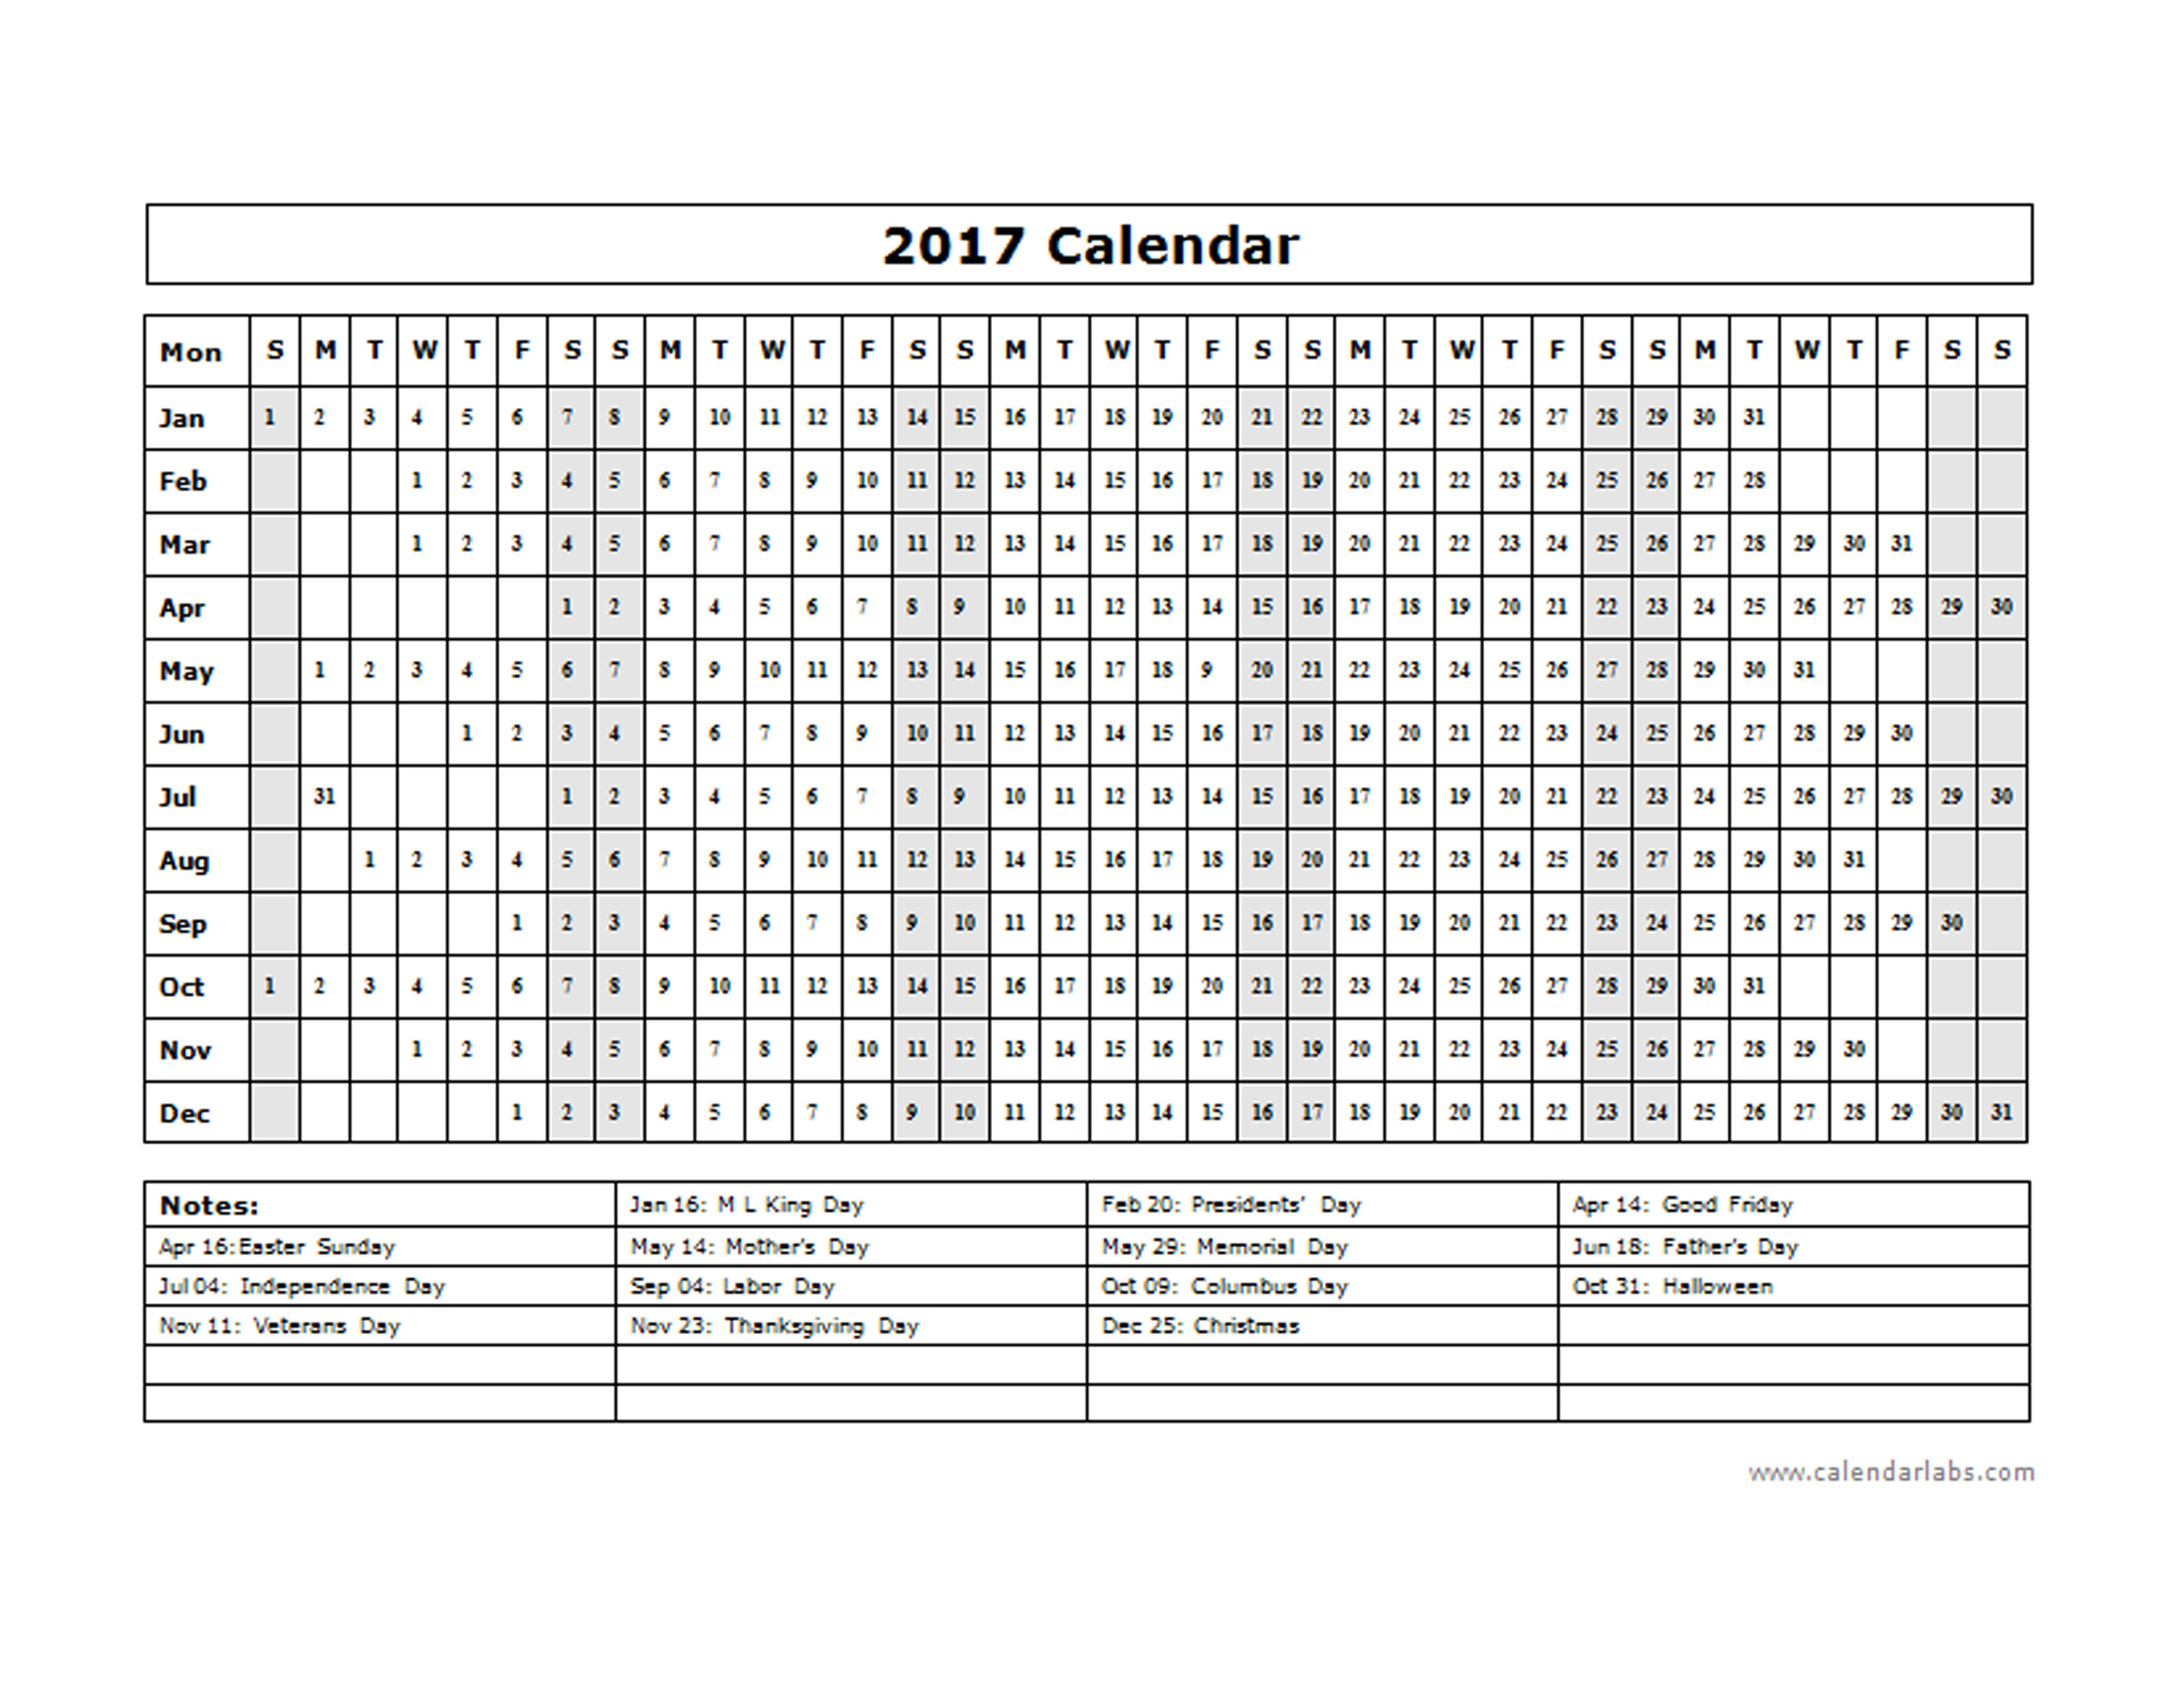 Creating A Perpetual Julian Calendar In Excel Geekswithblogs 2017 Calendar Template Year At A Glance Free Printable